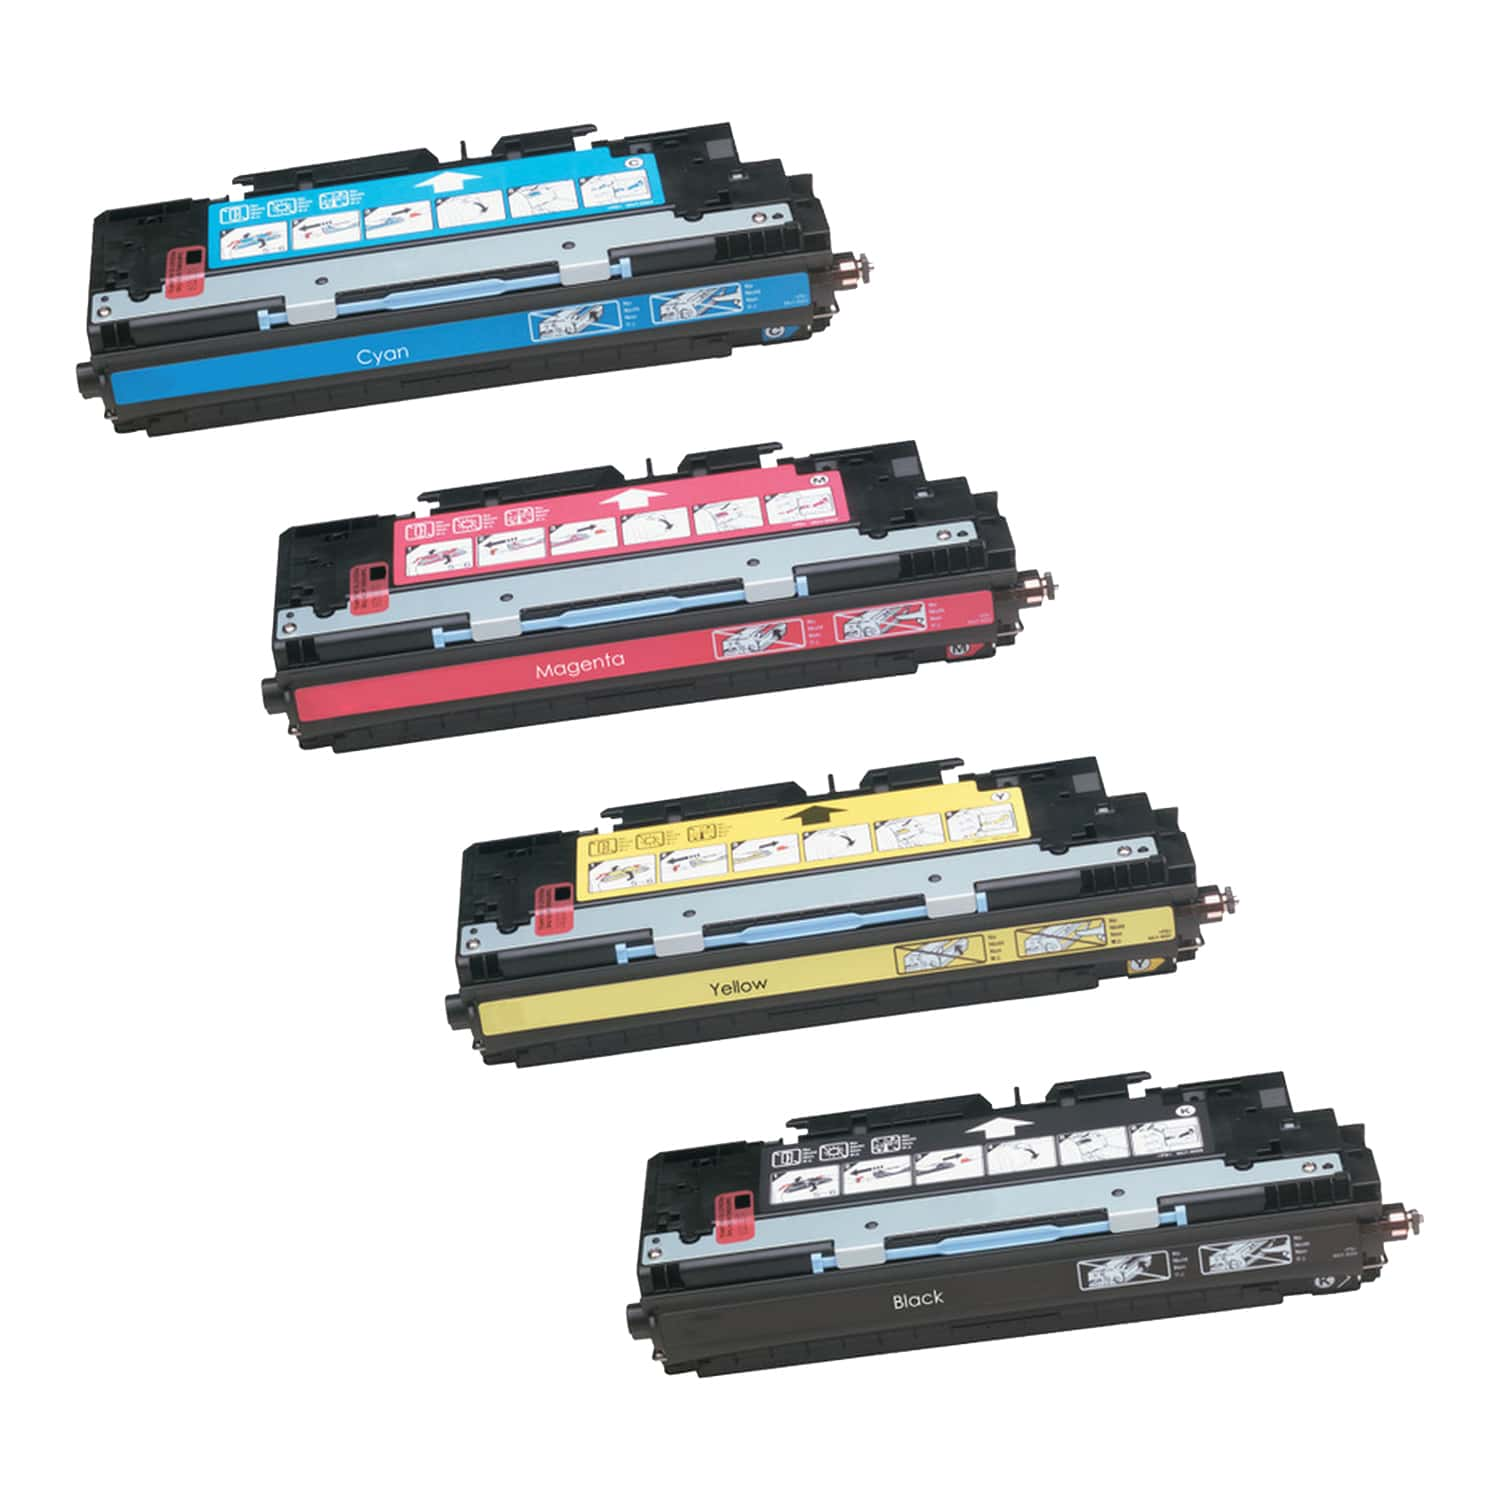 Remanufactured HP Toner Cartridge Bundlpack 311A-308A CMYK Pack - 4 Cartridges